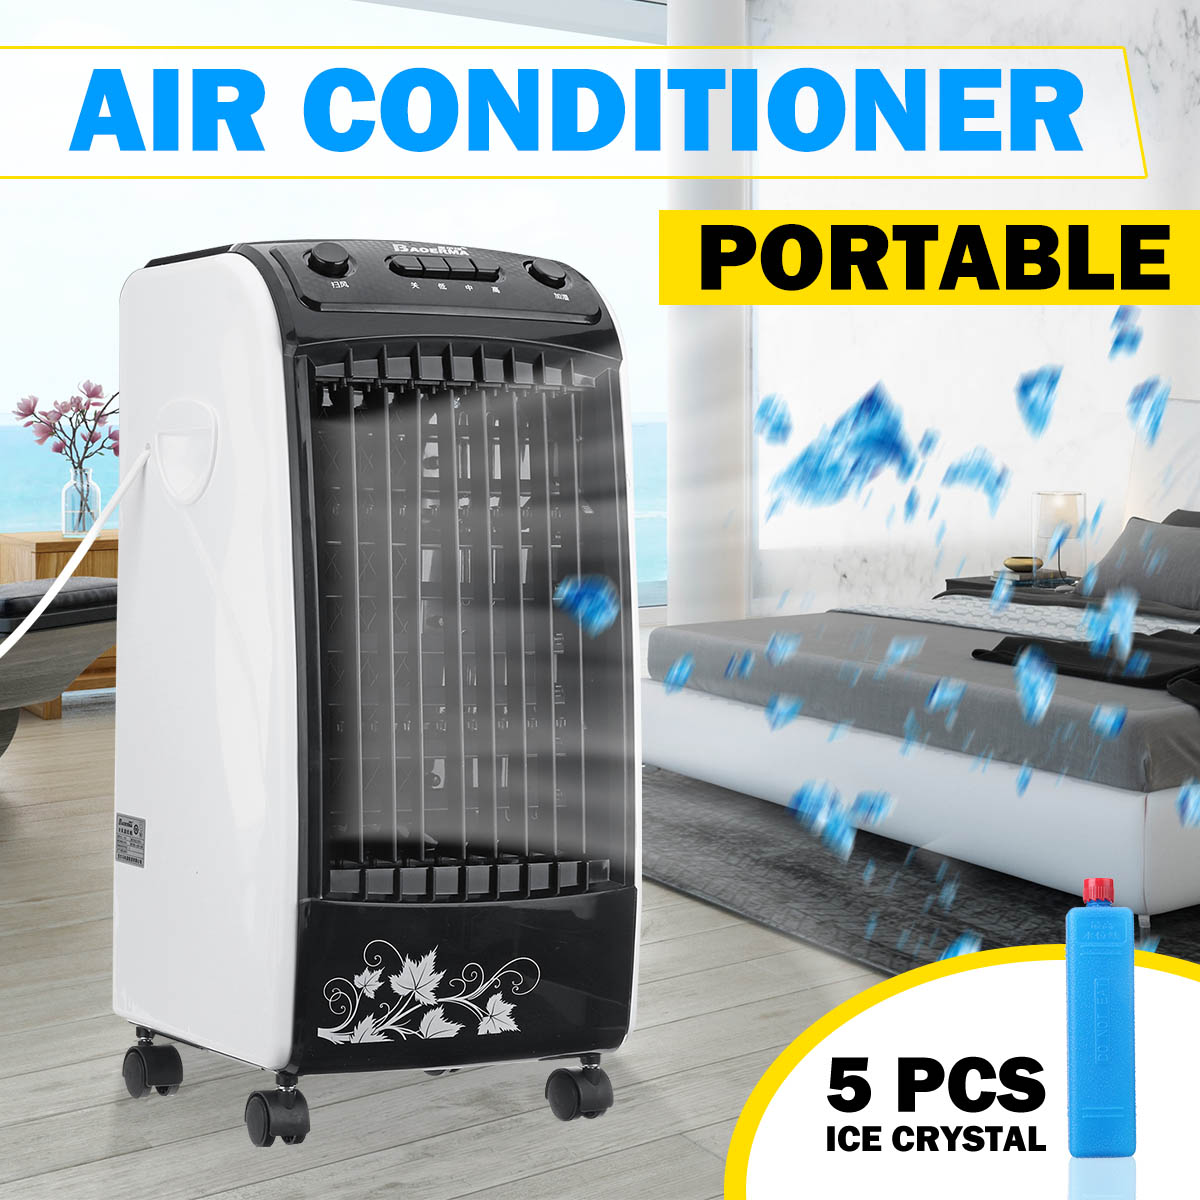 Powerful Wind Air Conditioner Conditioning Fan 220V 65W 5L 50HZ Hum High-density Environmental Protection Timing PortablePowerful Wind Air Conditioner Conditioning Fan 220V 65W 5L 50HZ Hum High-density Environmental Protection Timing Portable